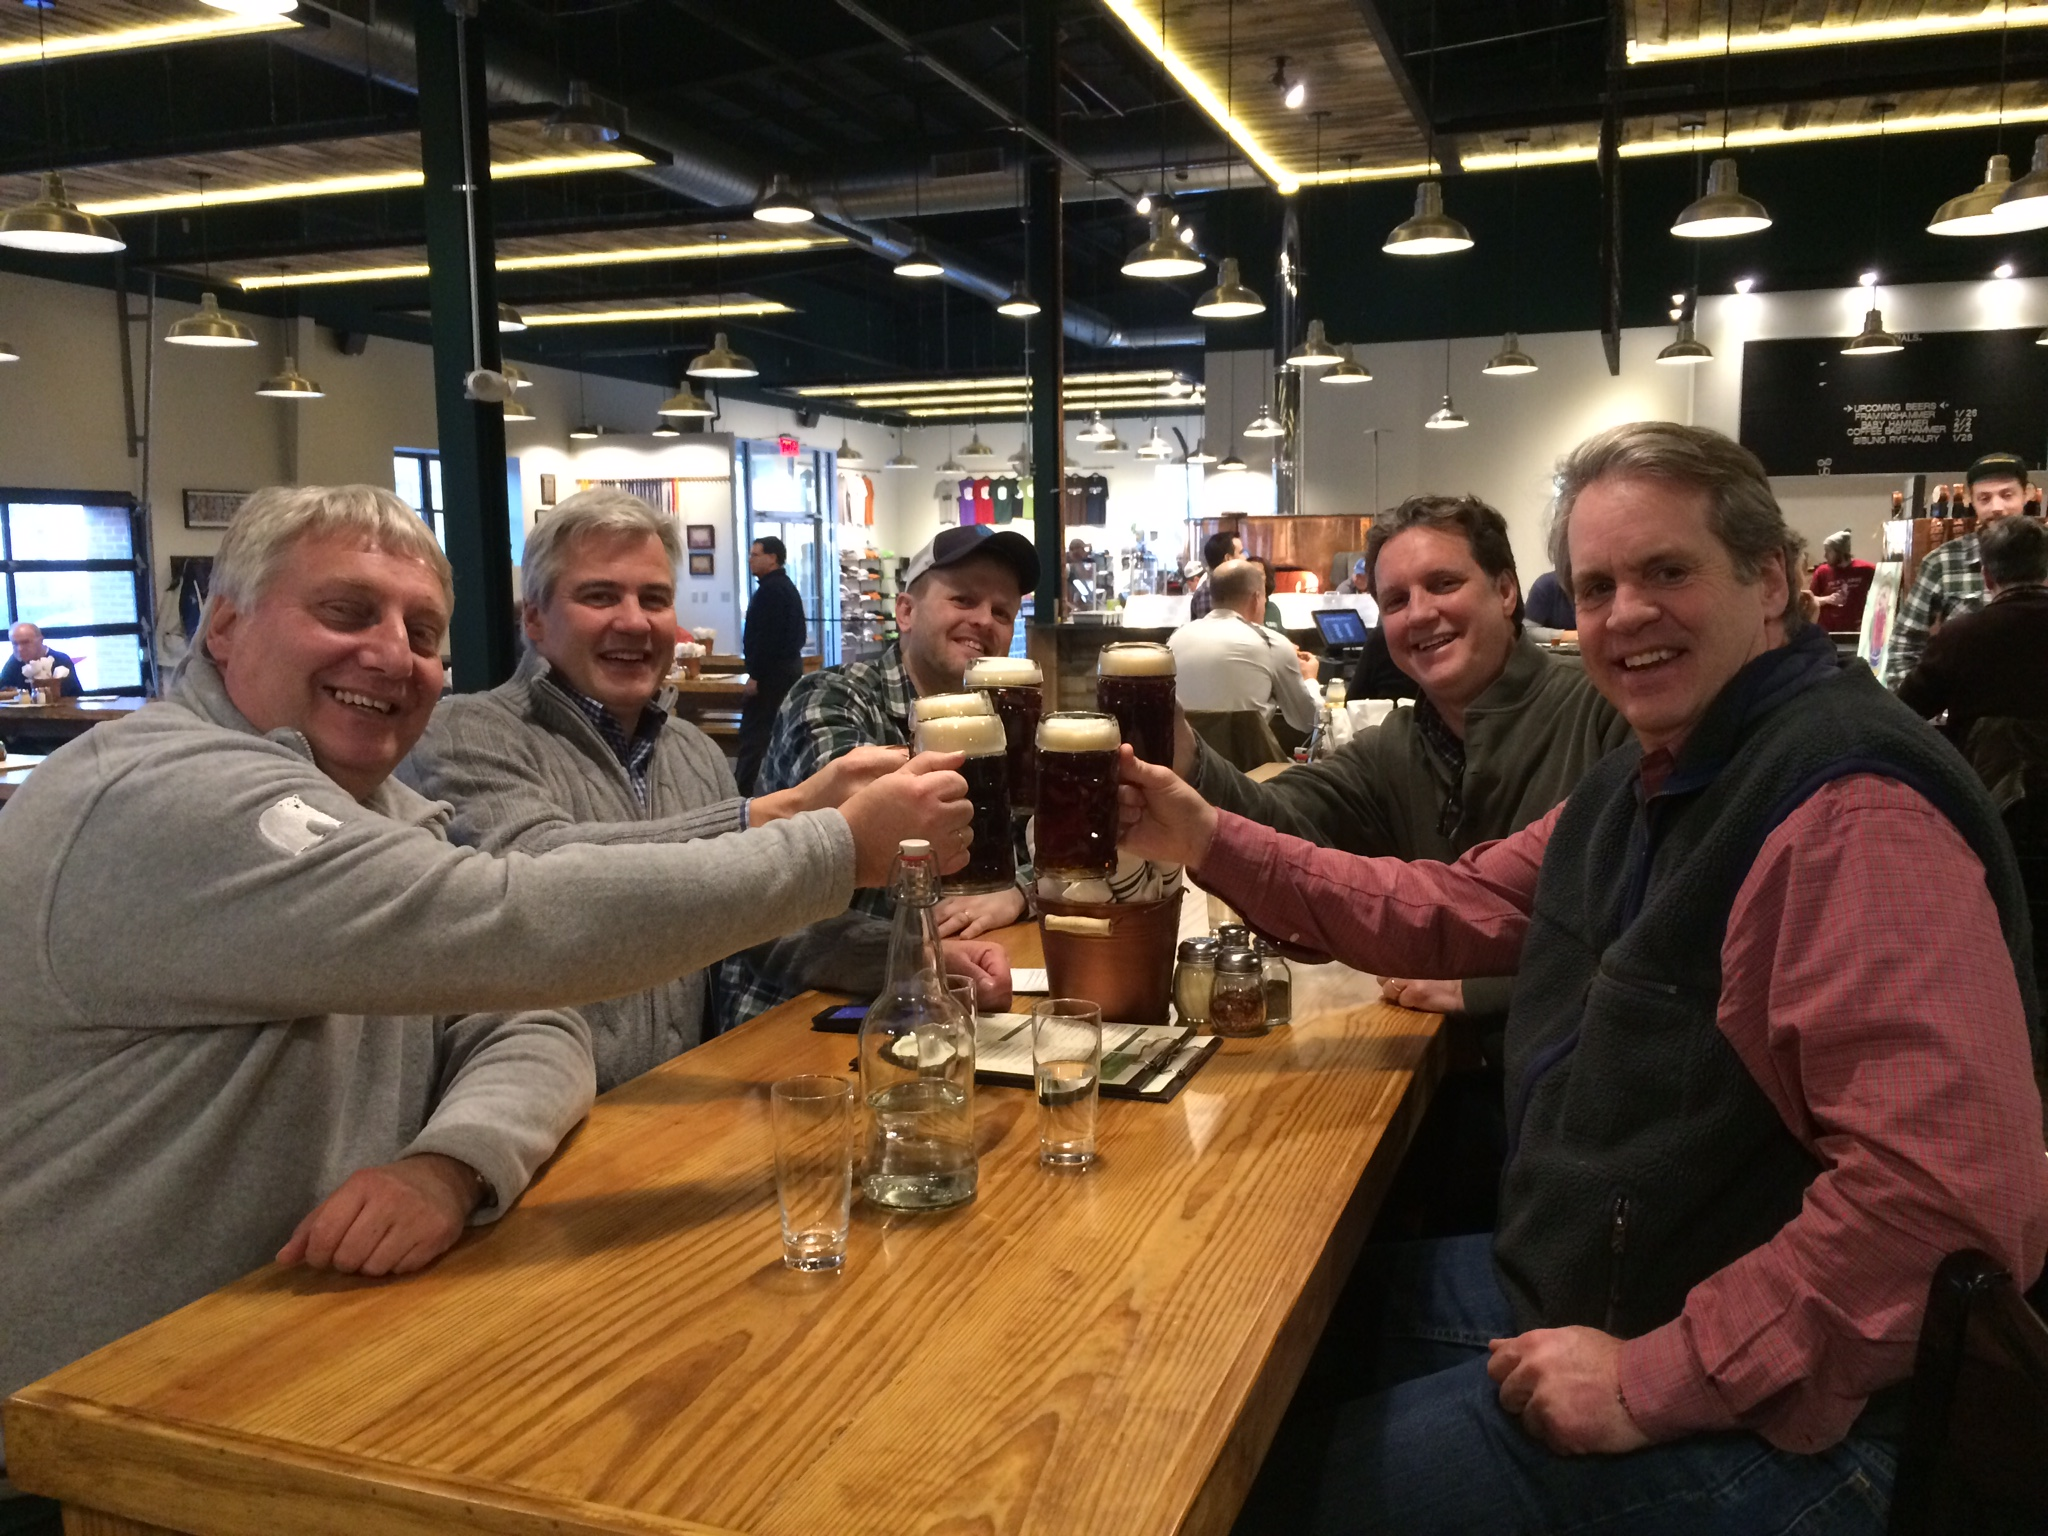 Jack Hendler, Jack's Abby shares a Red Tape Lager with Markus Becker, Stephan Bergler, Mark and Mike - Prost!